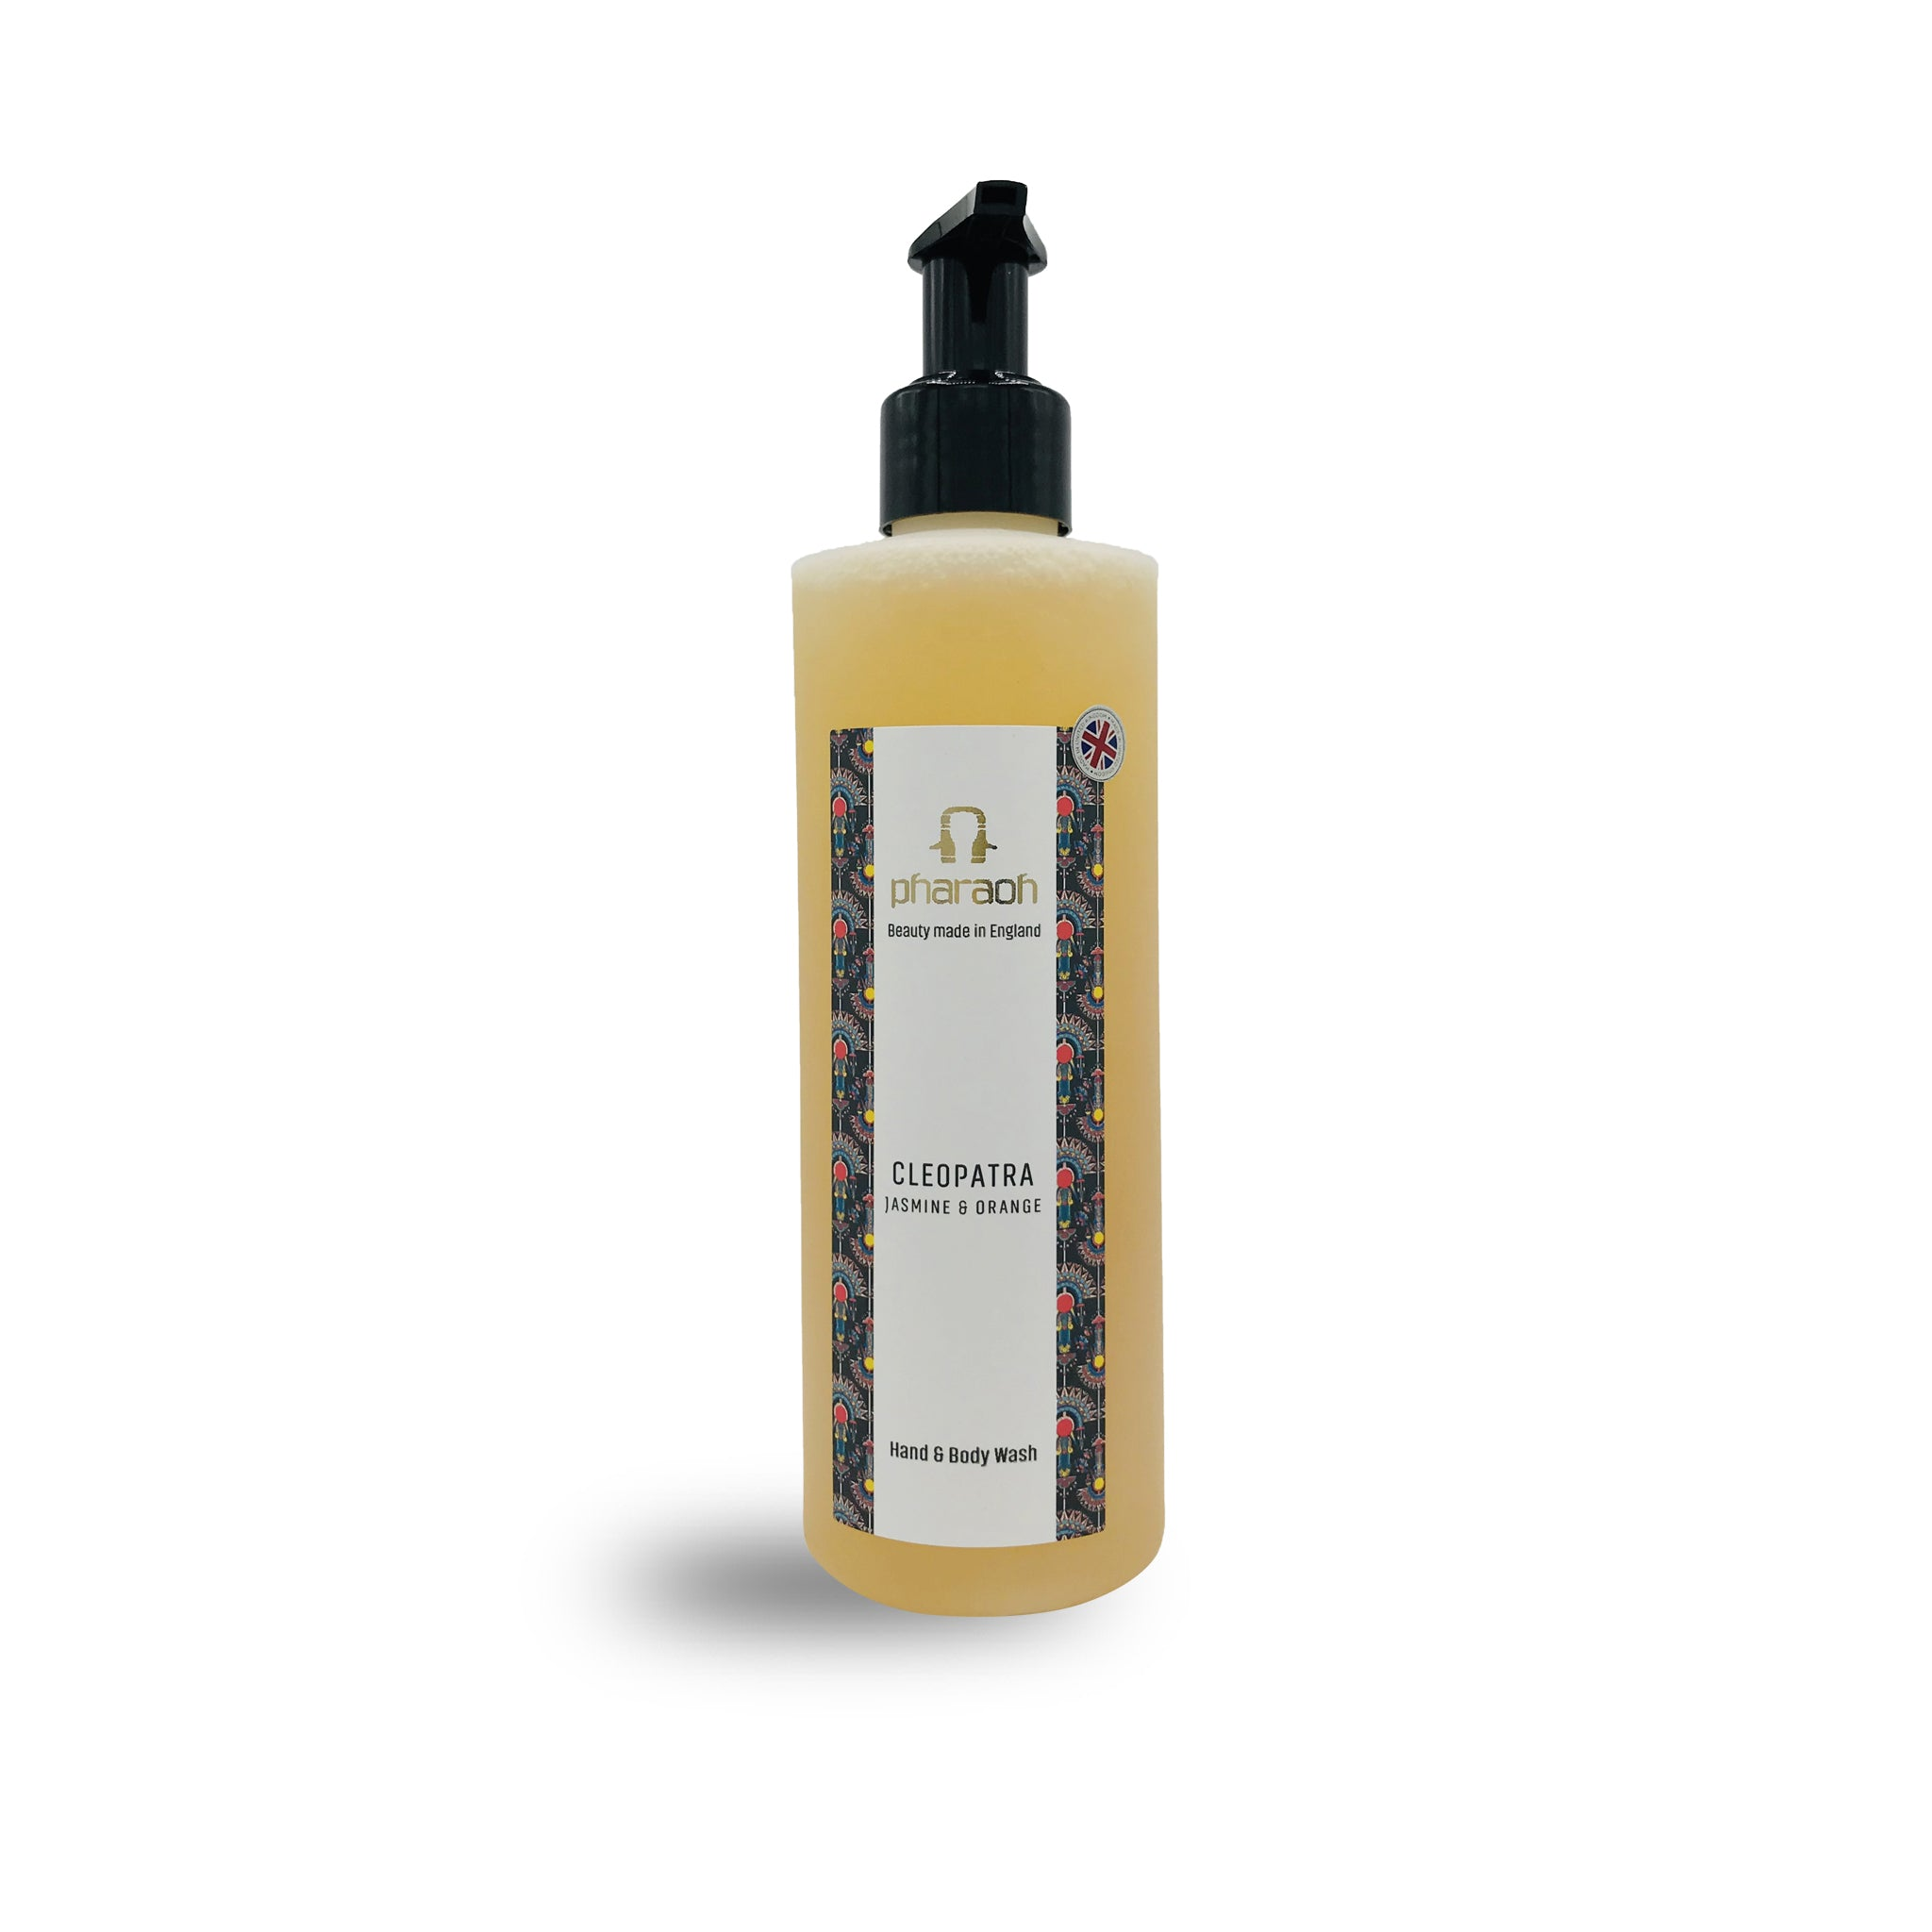 CLEOPATRA (Jasmine & Orange) Luxury Hand & Body Wash 250ml